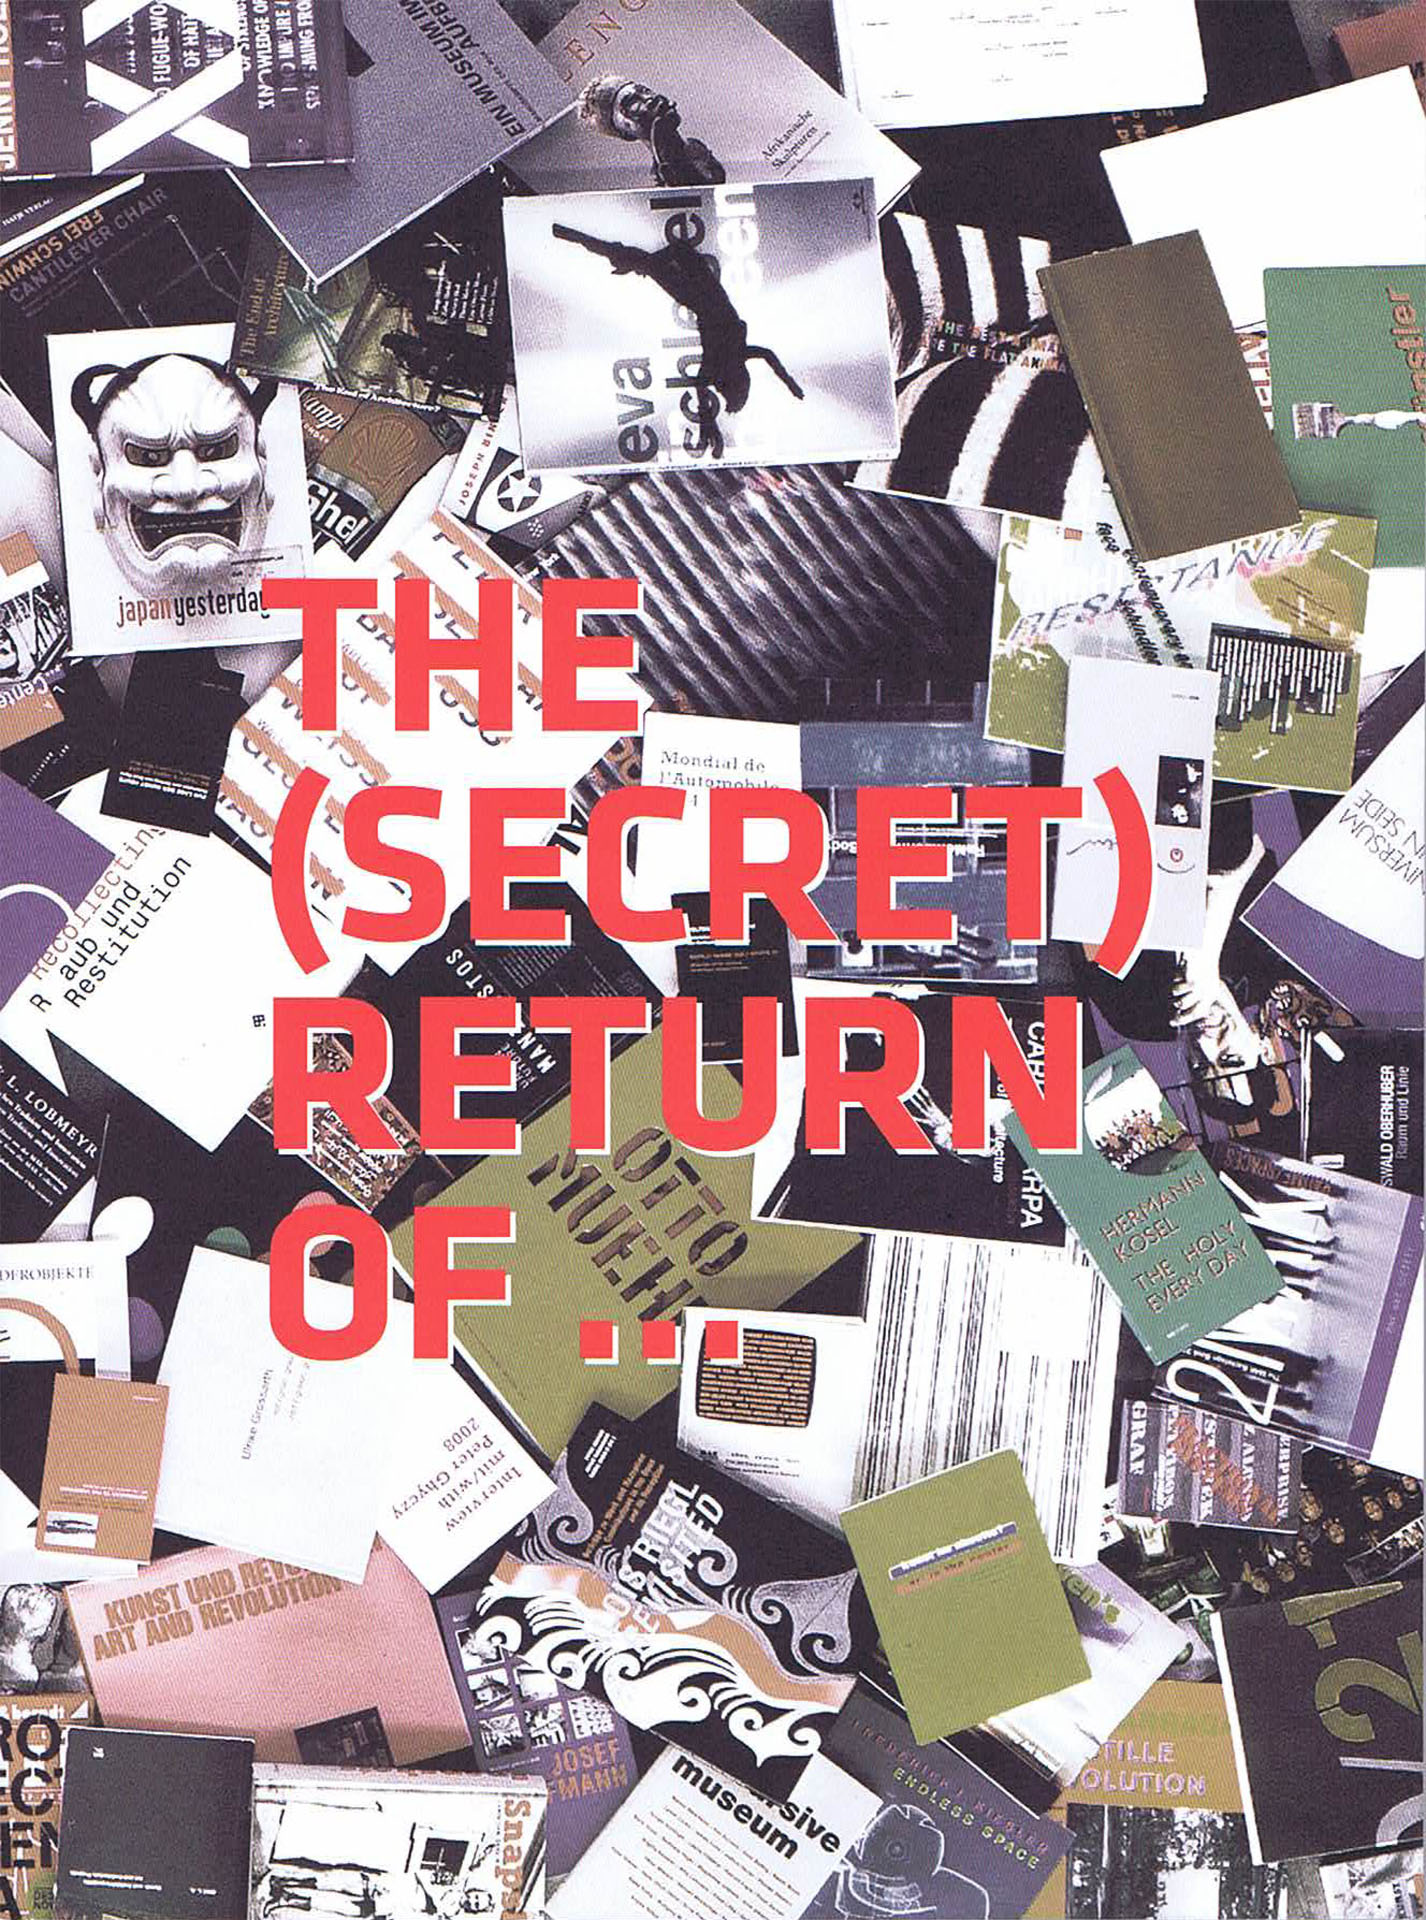 The (Secret) Return of